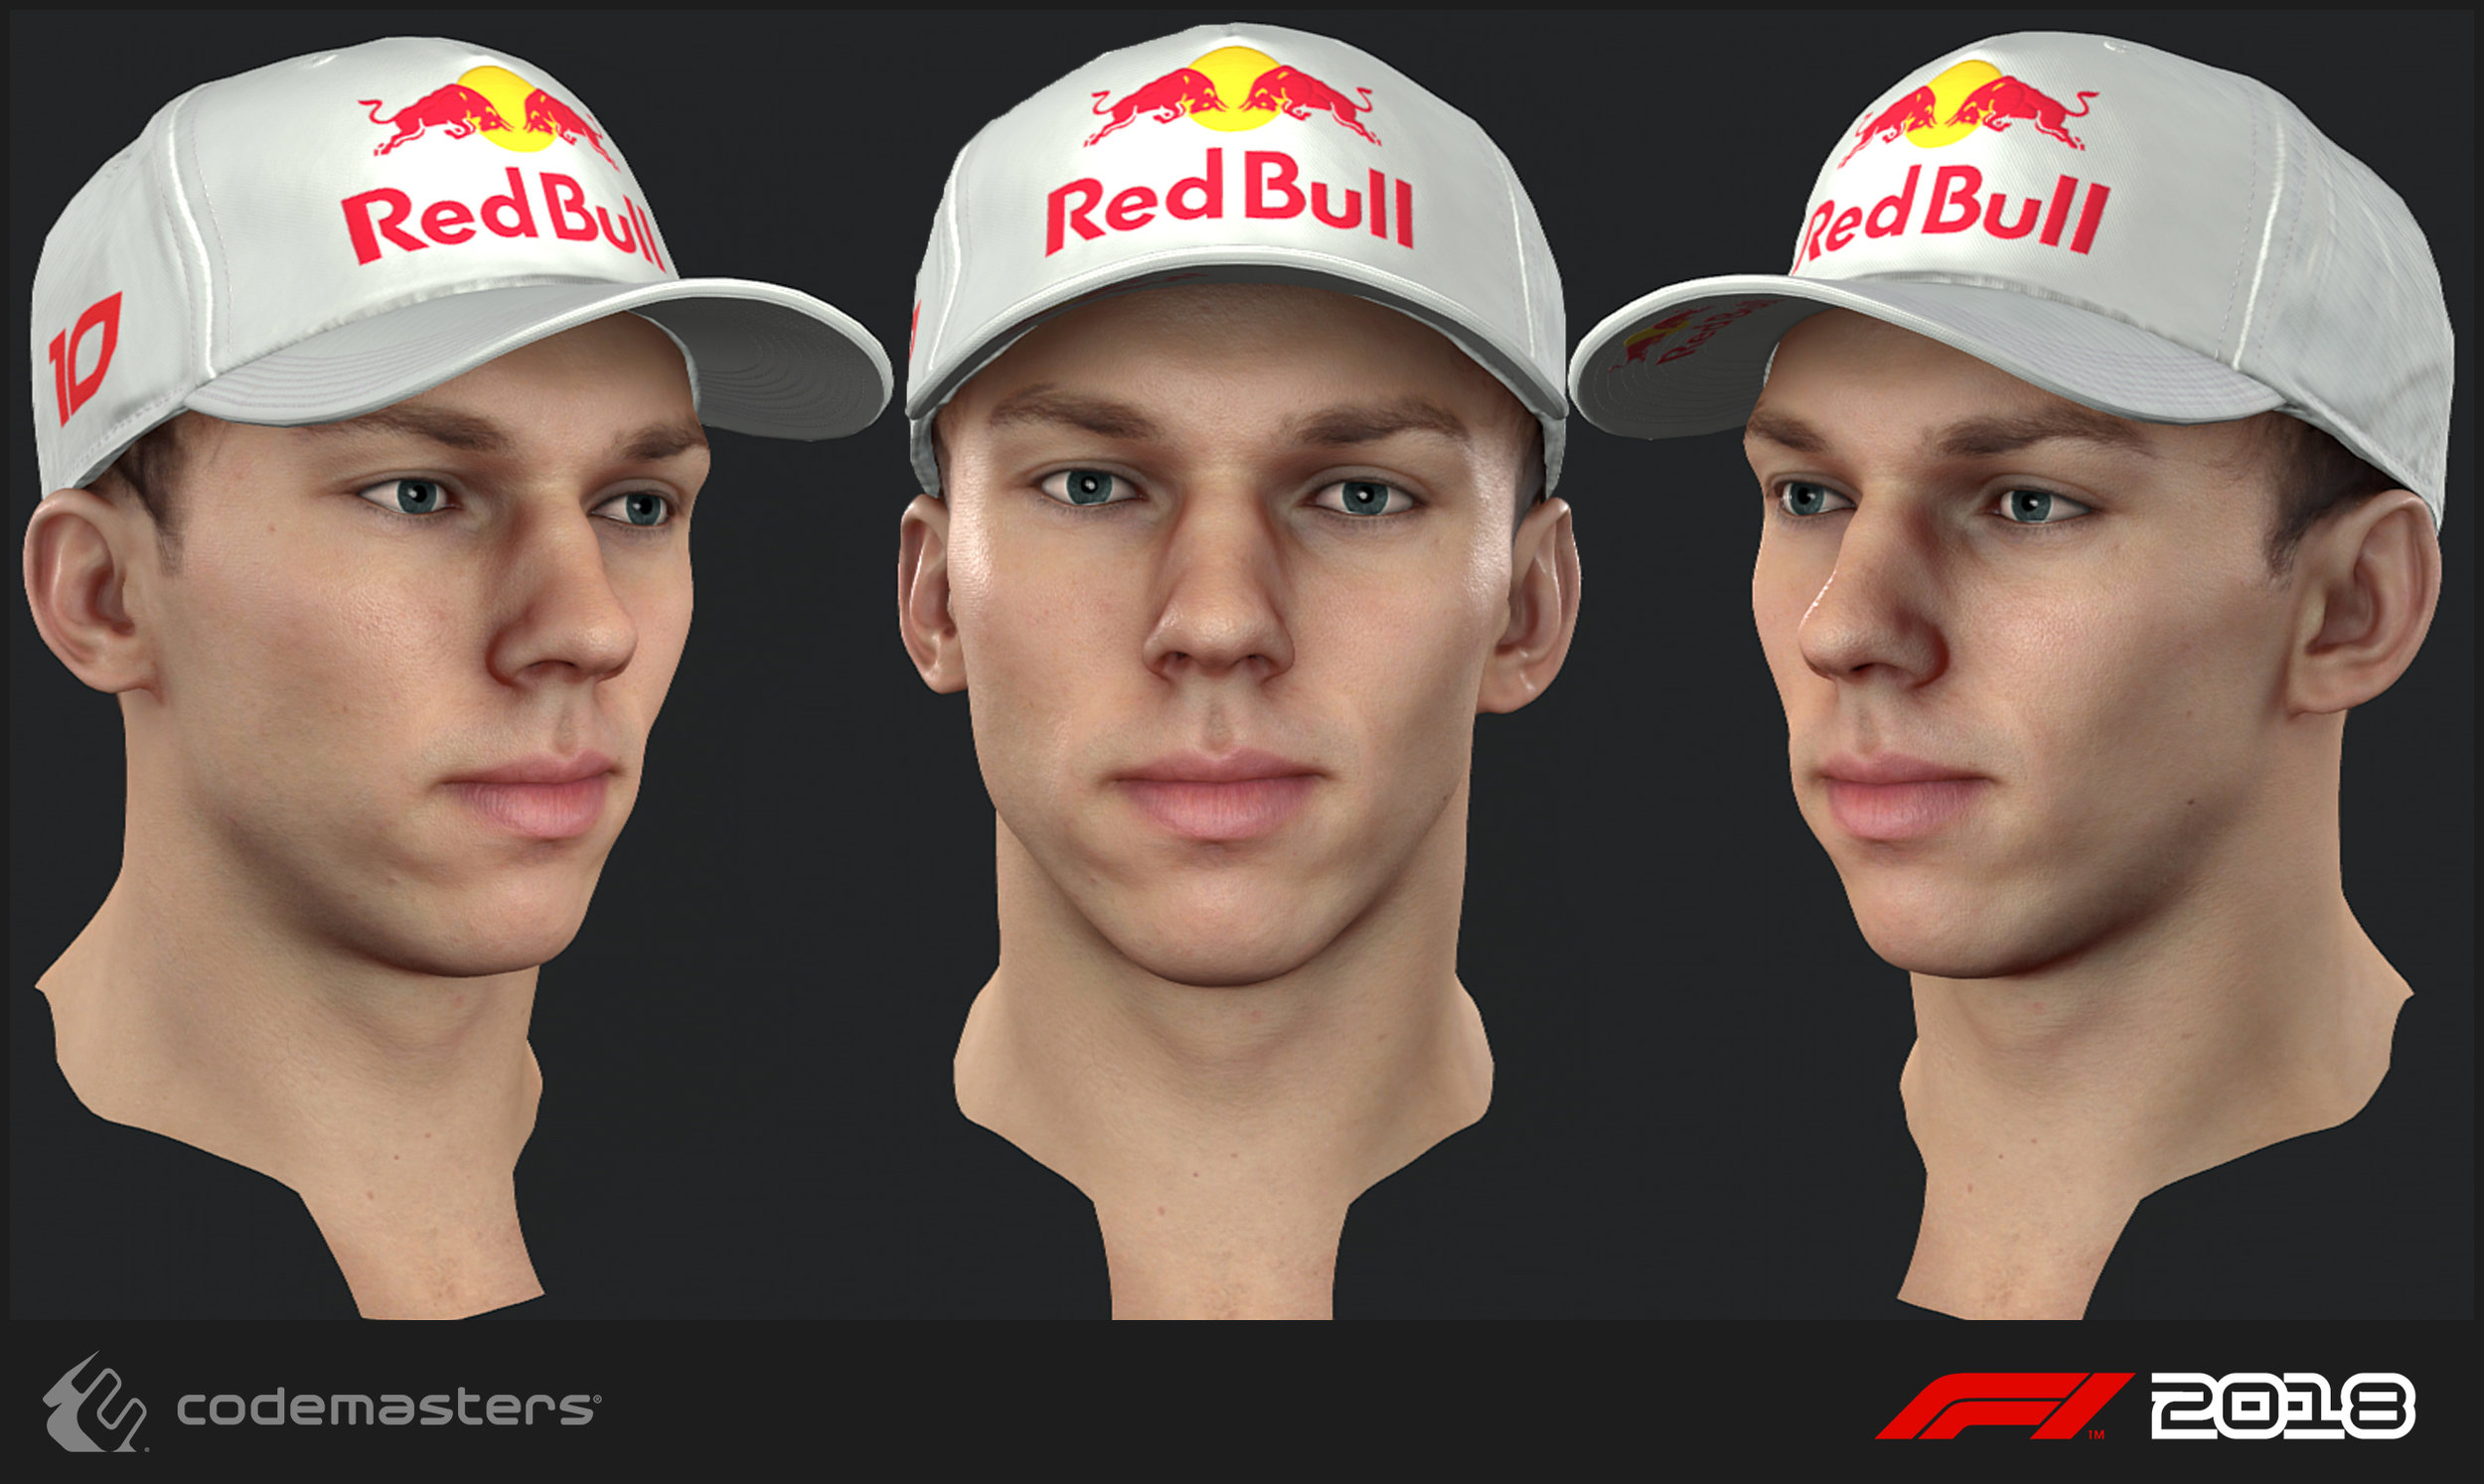 Pierre Gasly. Responsibilities: Scanning the driver, high poly creation, texture creation for the head.